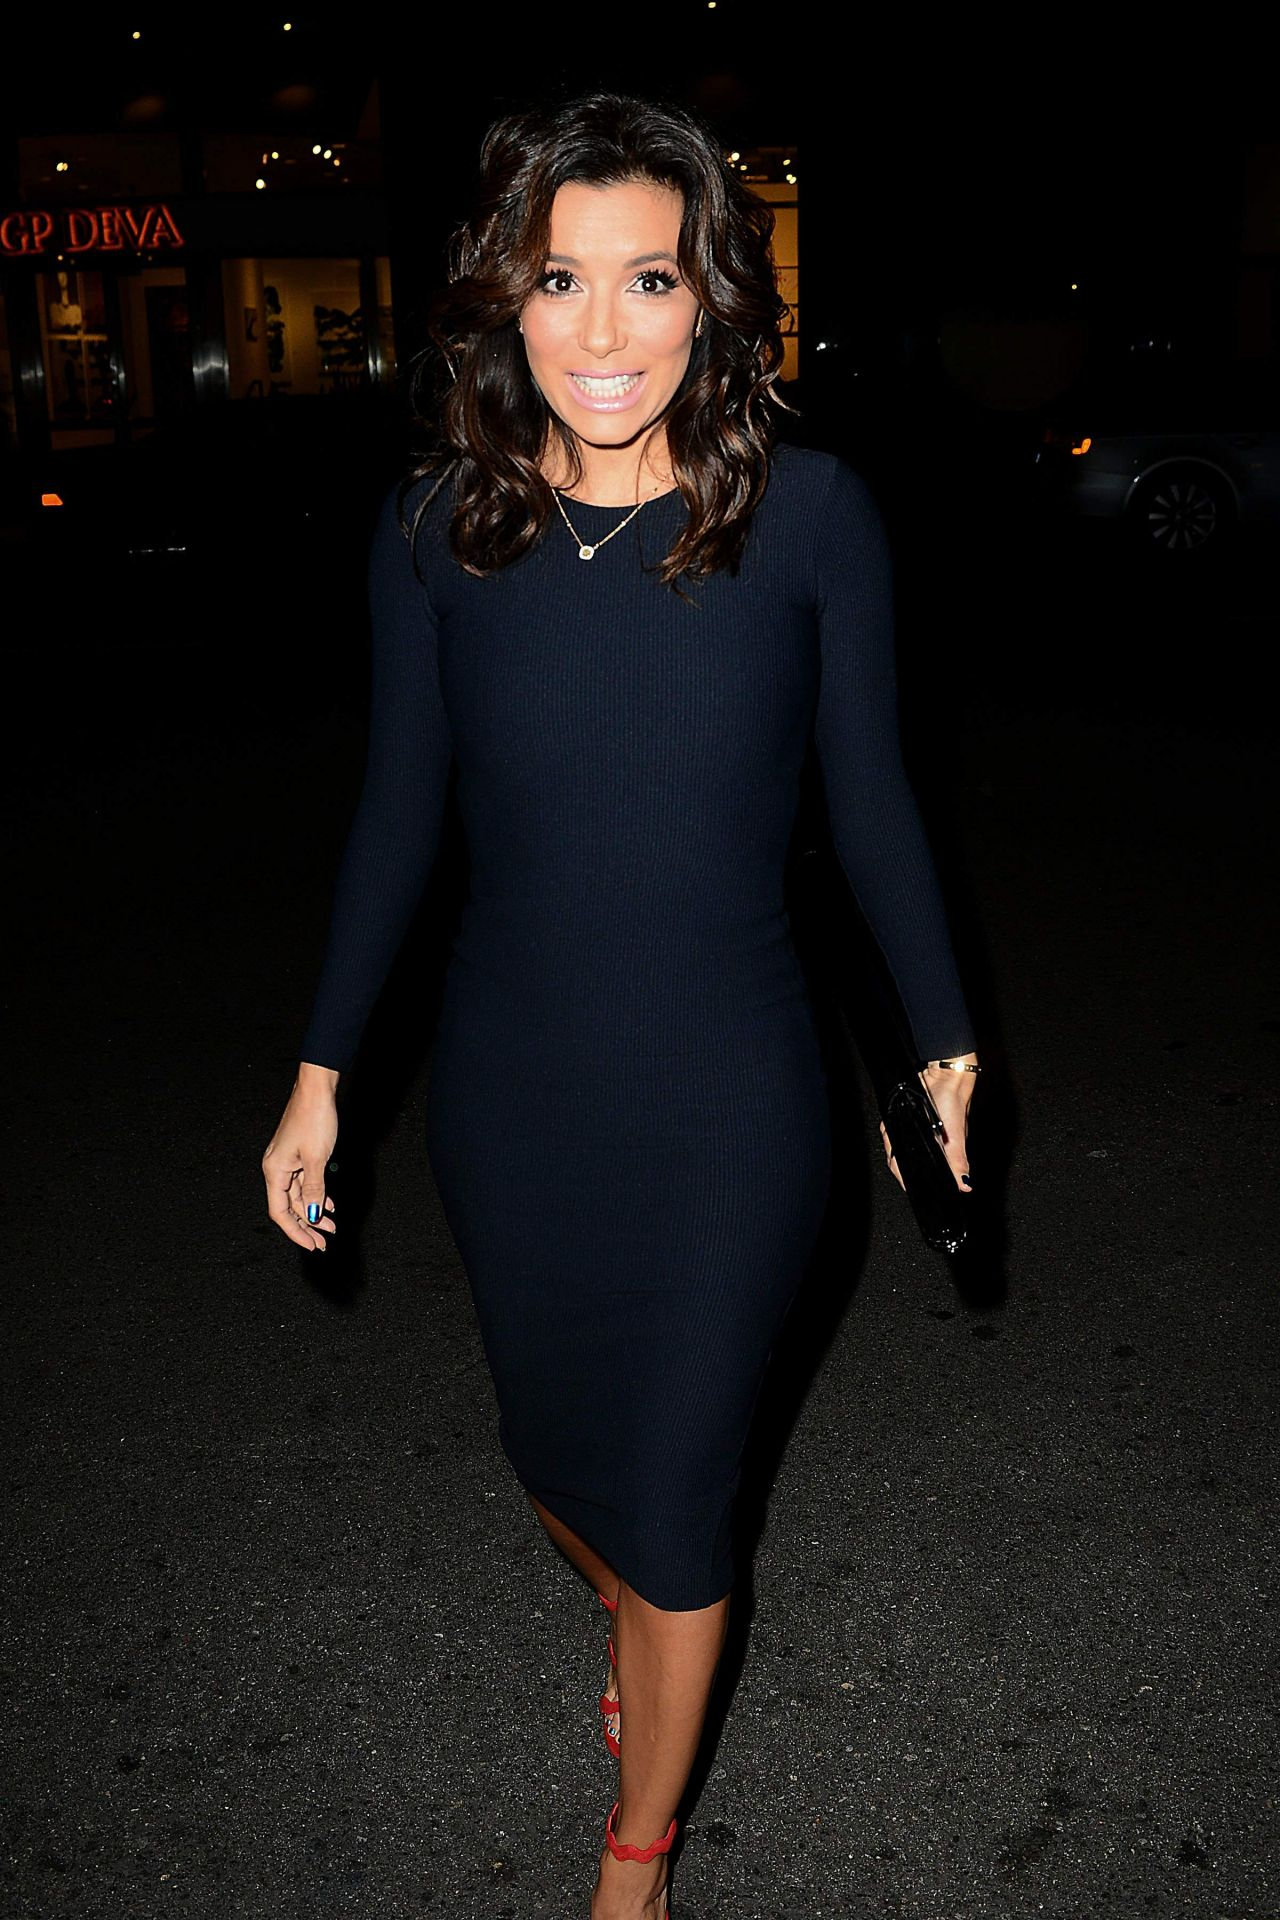 Eva Longoria Has Dinner at Mr Chow in Los Angeles - January 2015